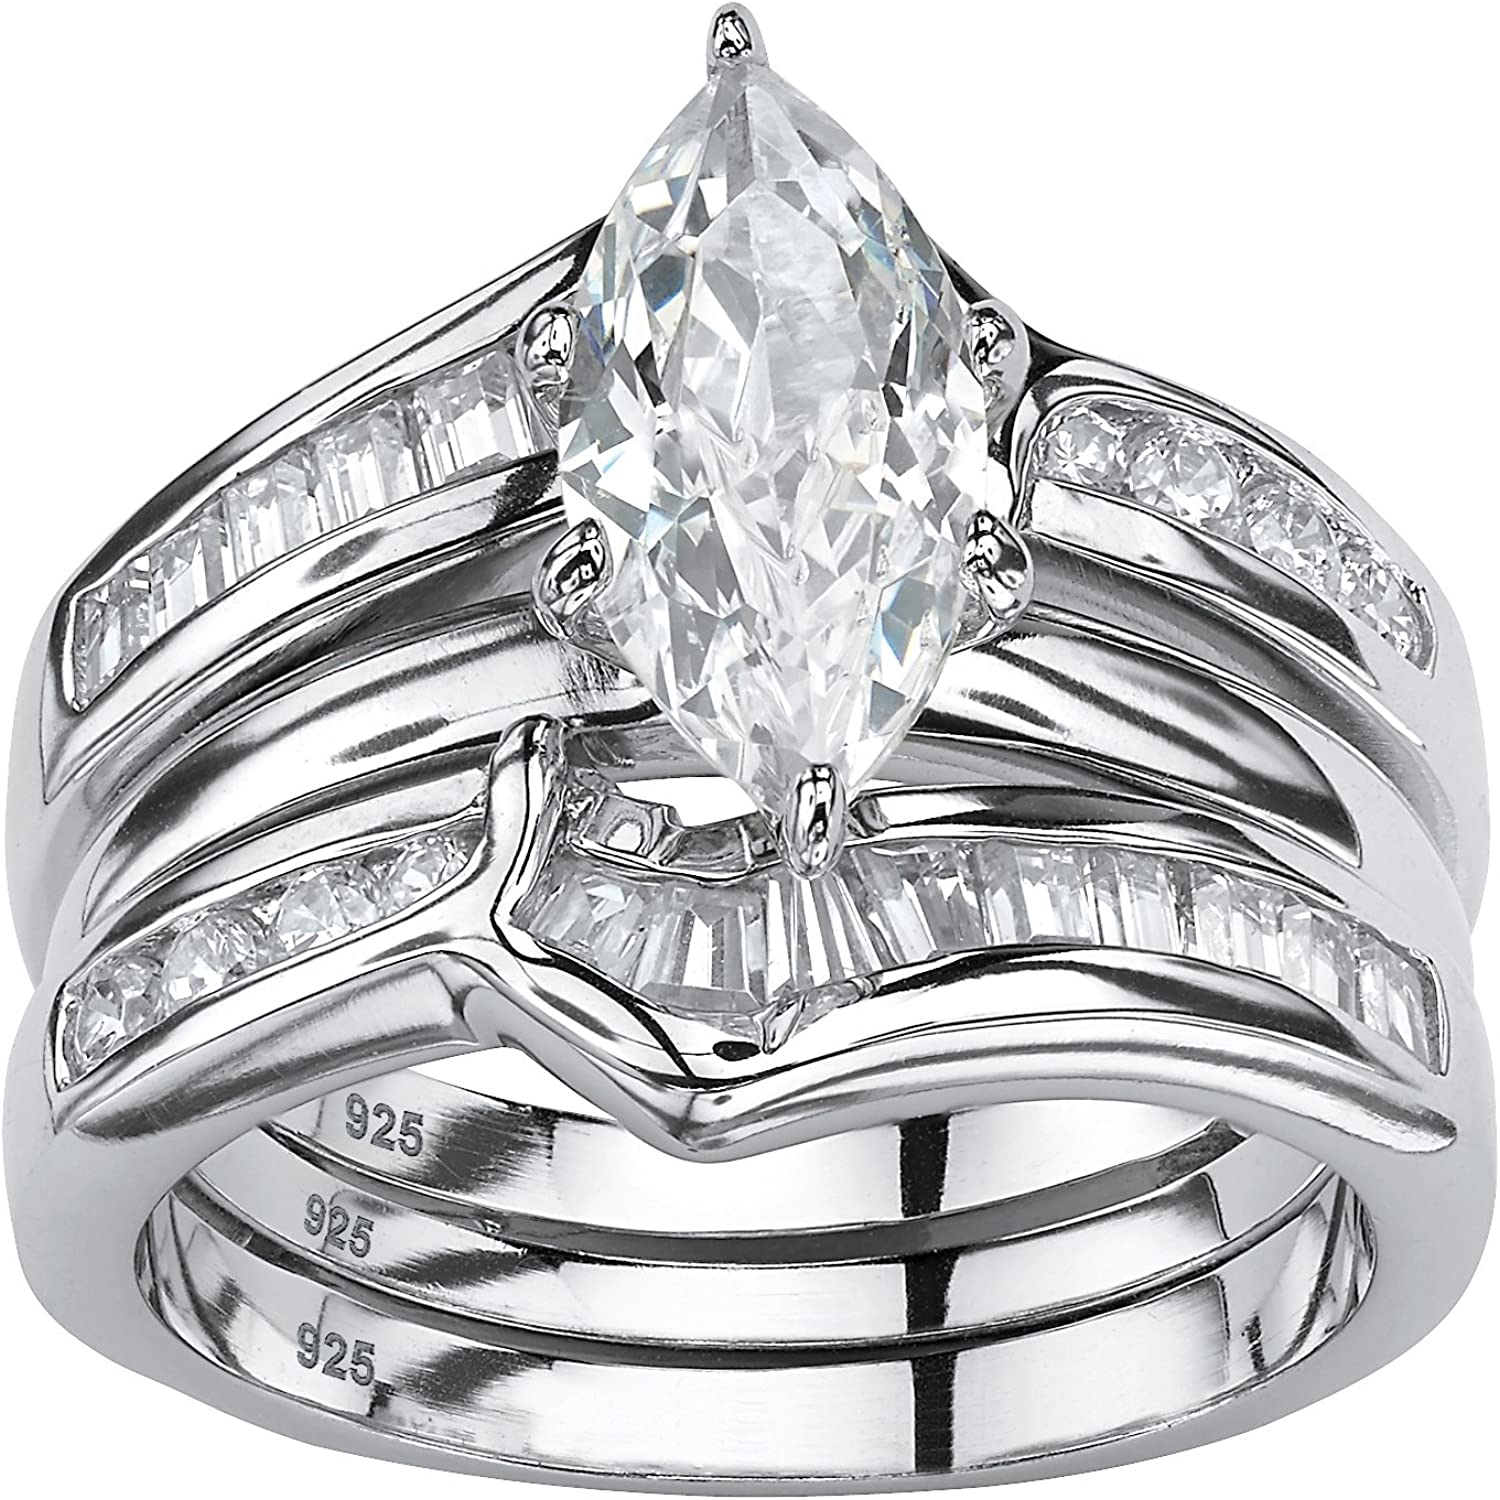 Tulsa Mall Free shipping / New Sterling Silver Marquise Cut and Cubic 2 Piece Baguette Zirconia